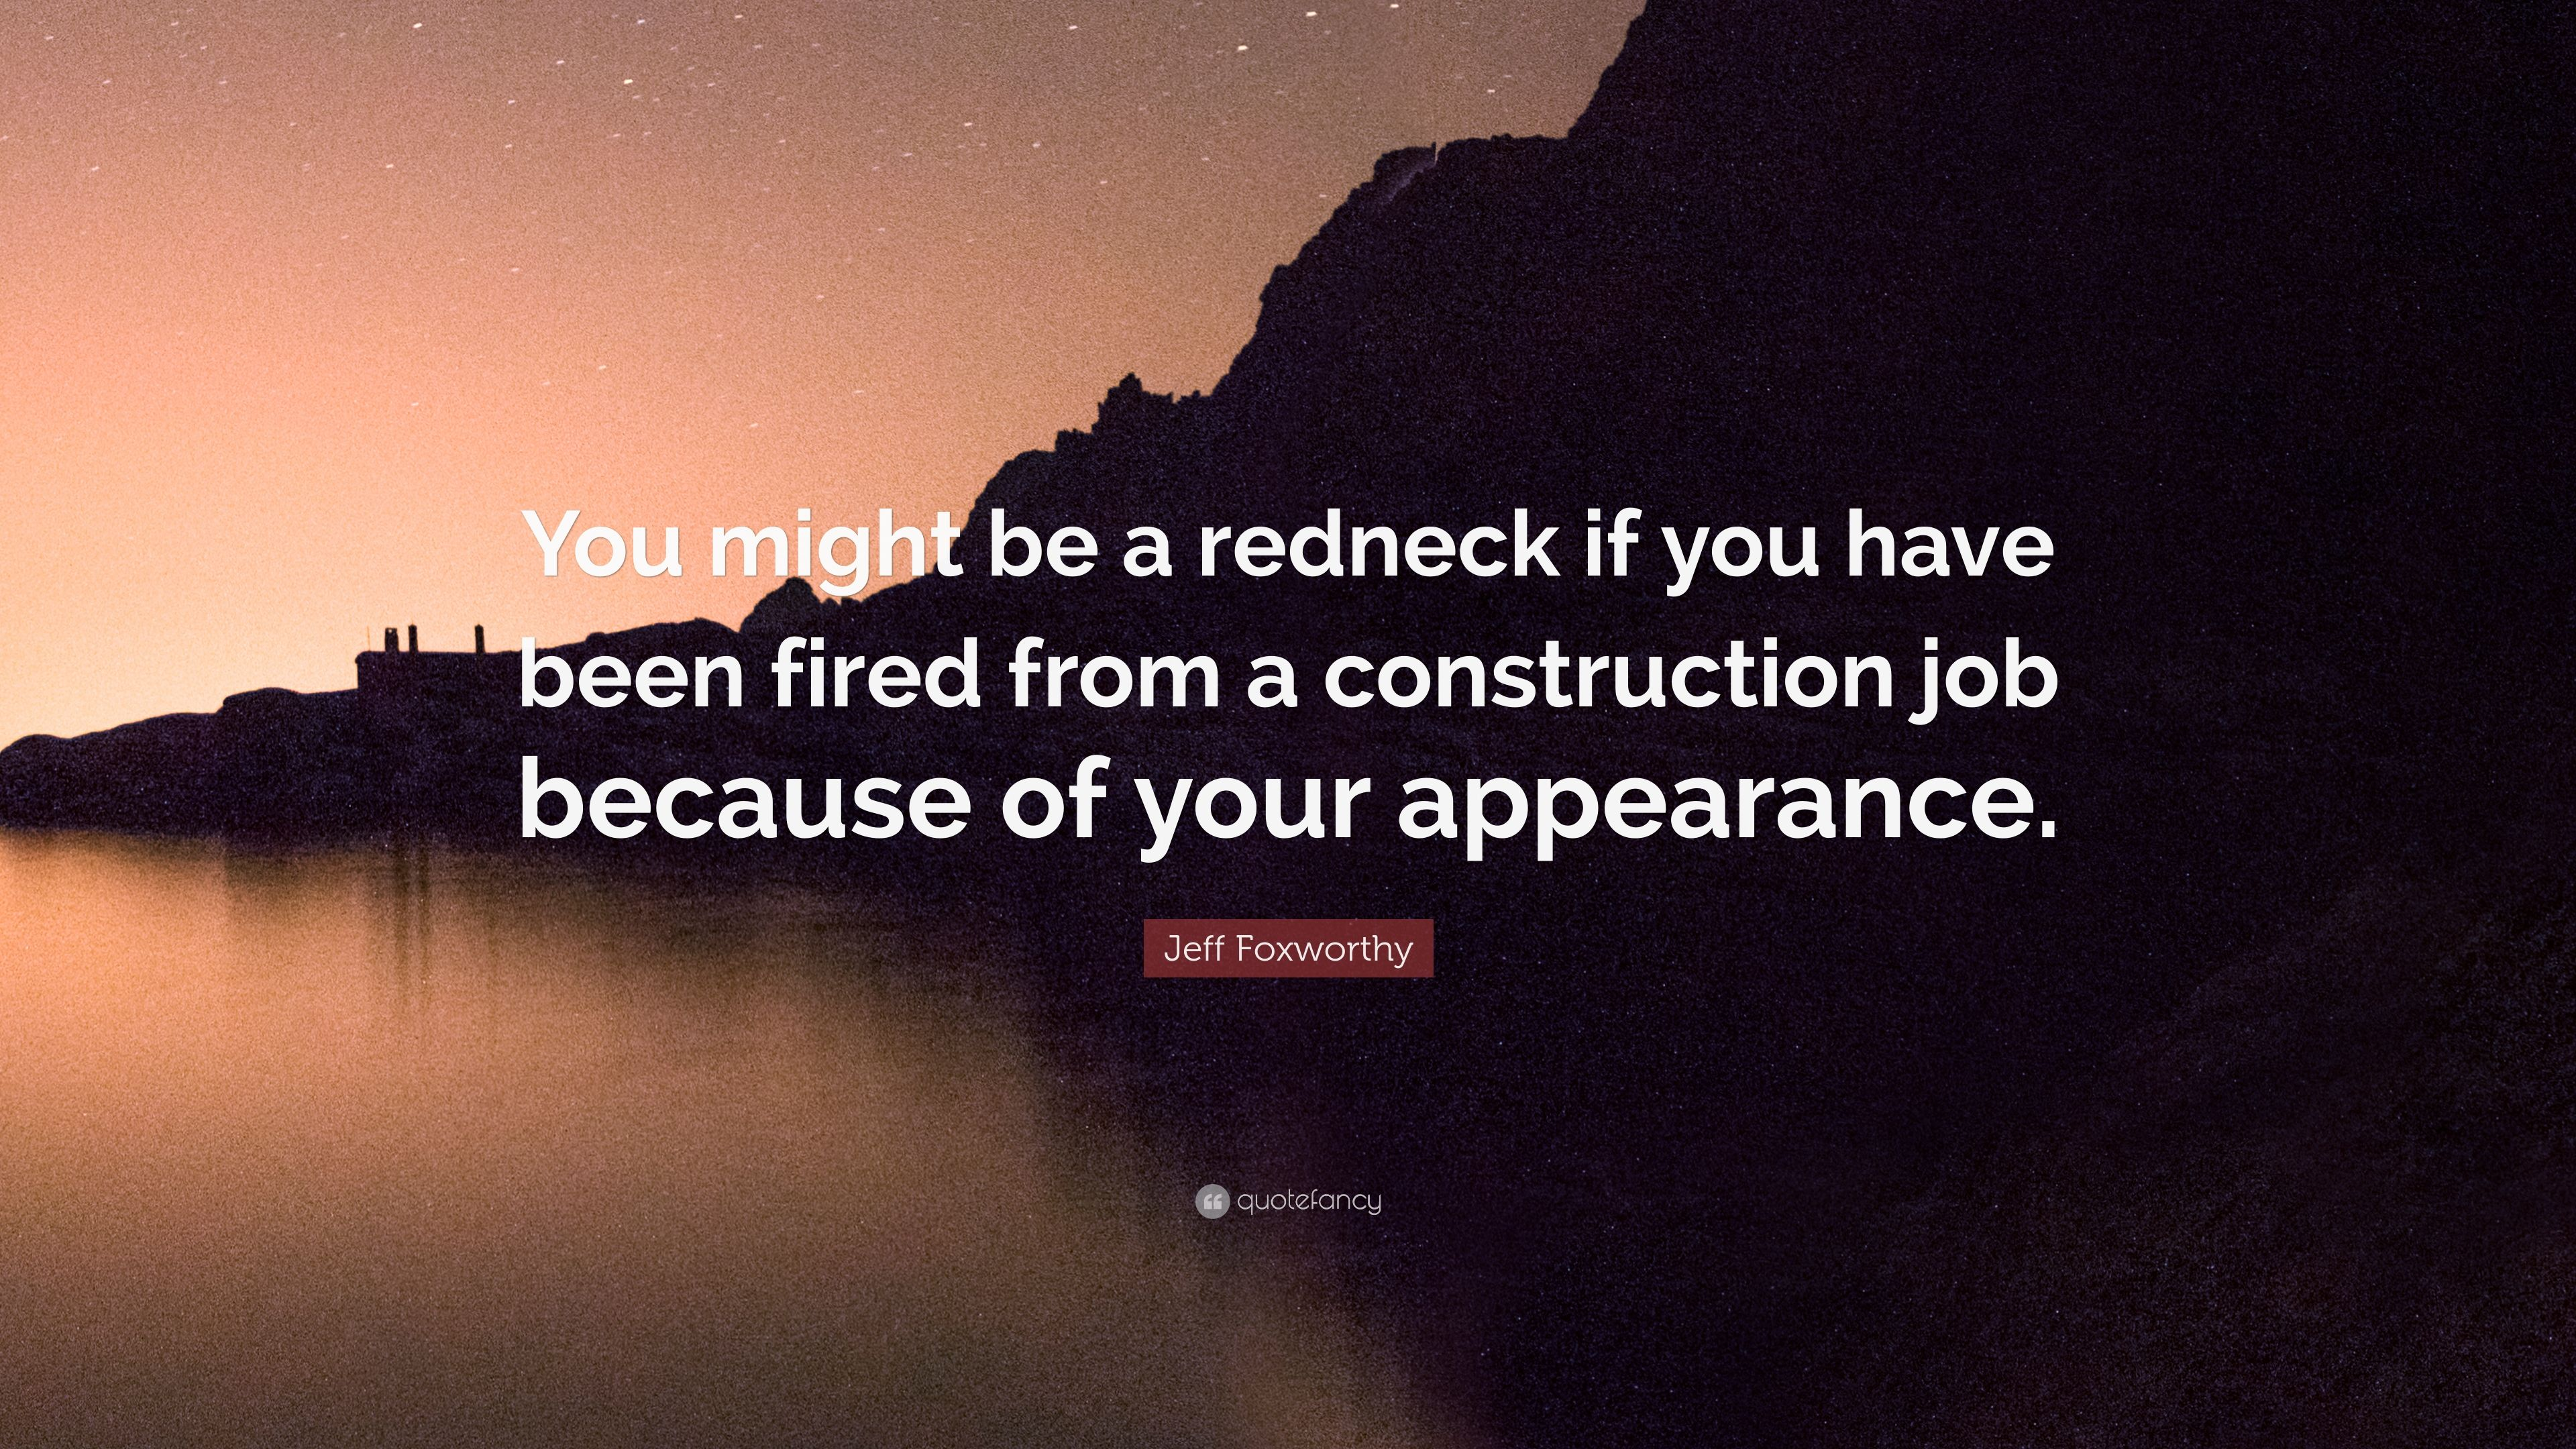 jeff foxworthy quote   u201cyou might be a redneck if you have been fired from a construction job